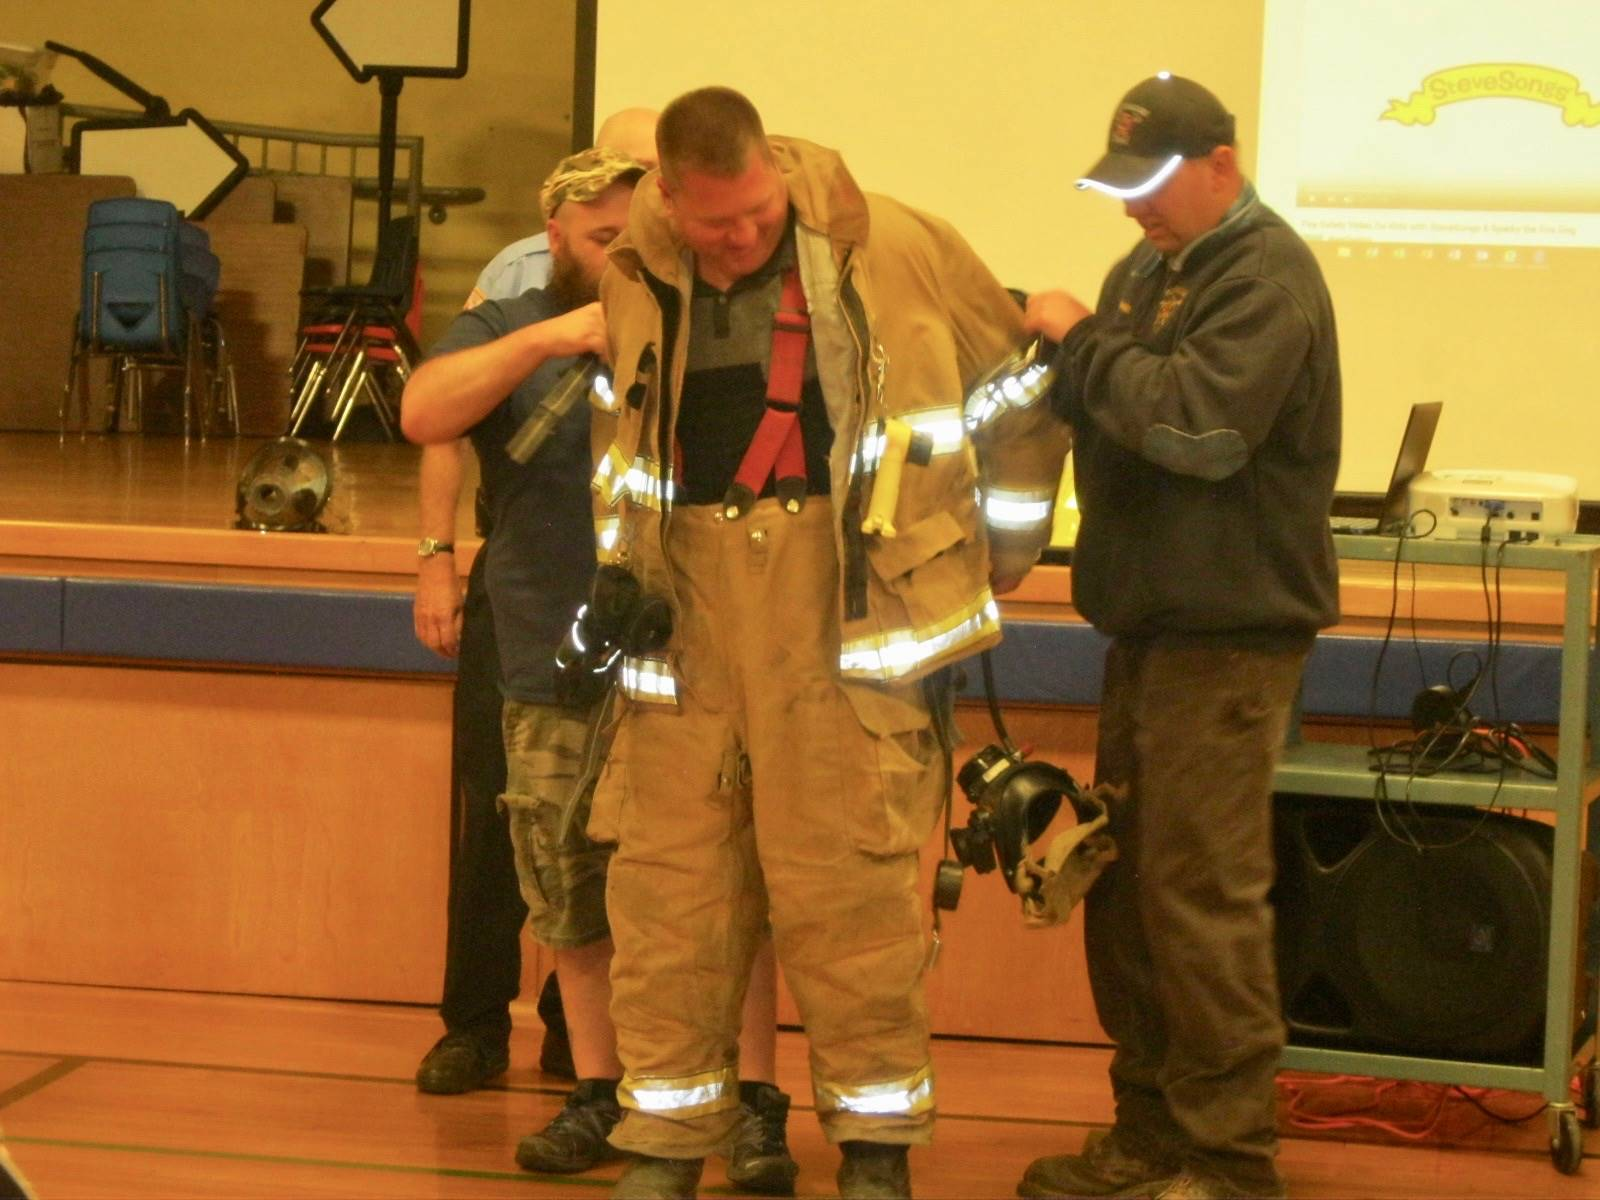 A fire fighter needs help getting their gear off.